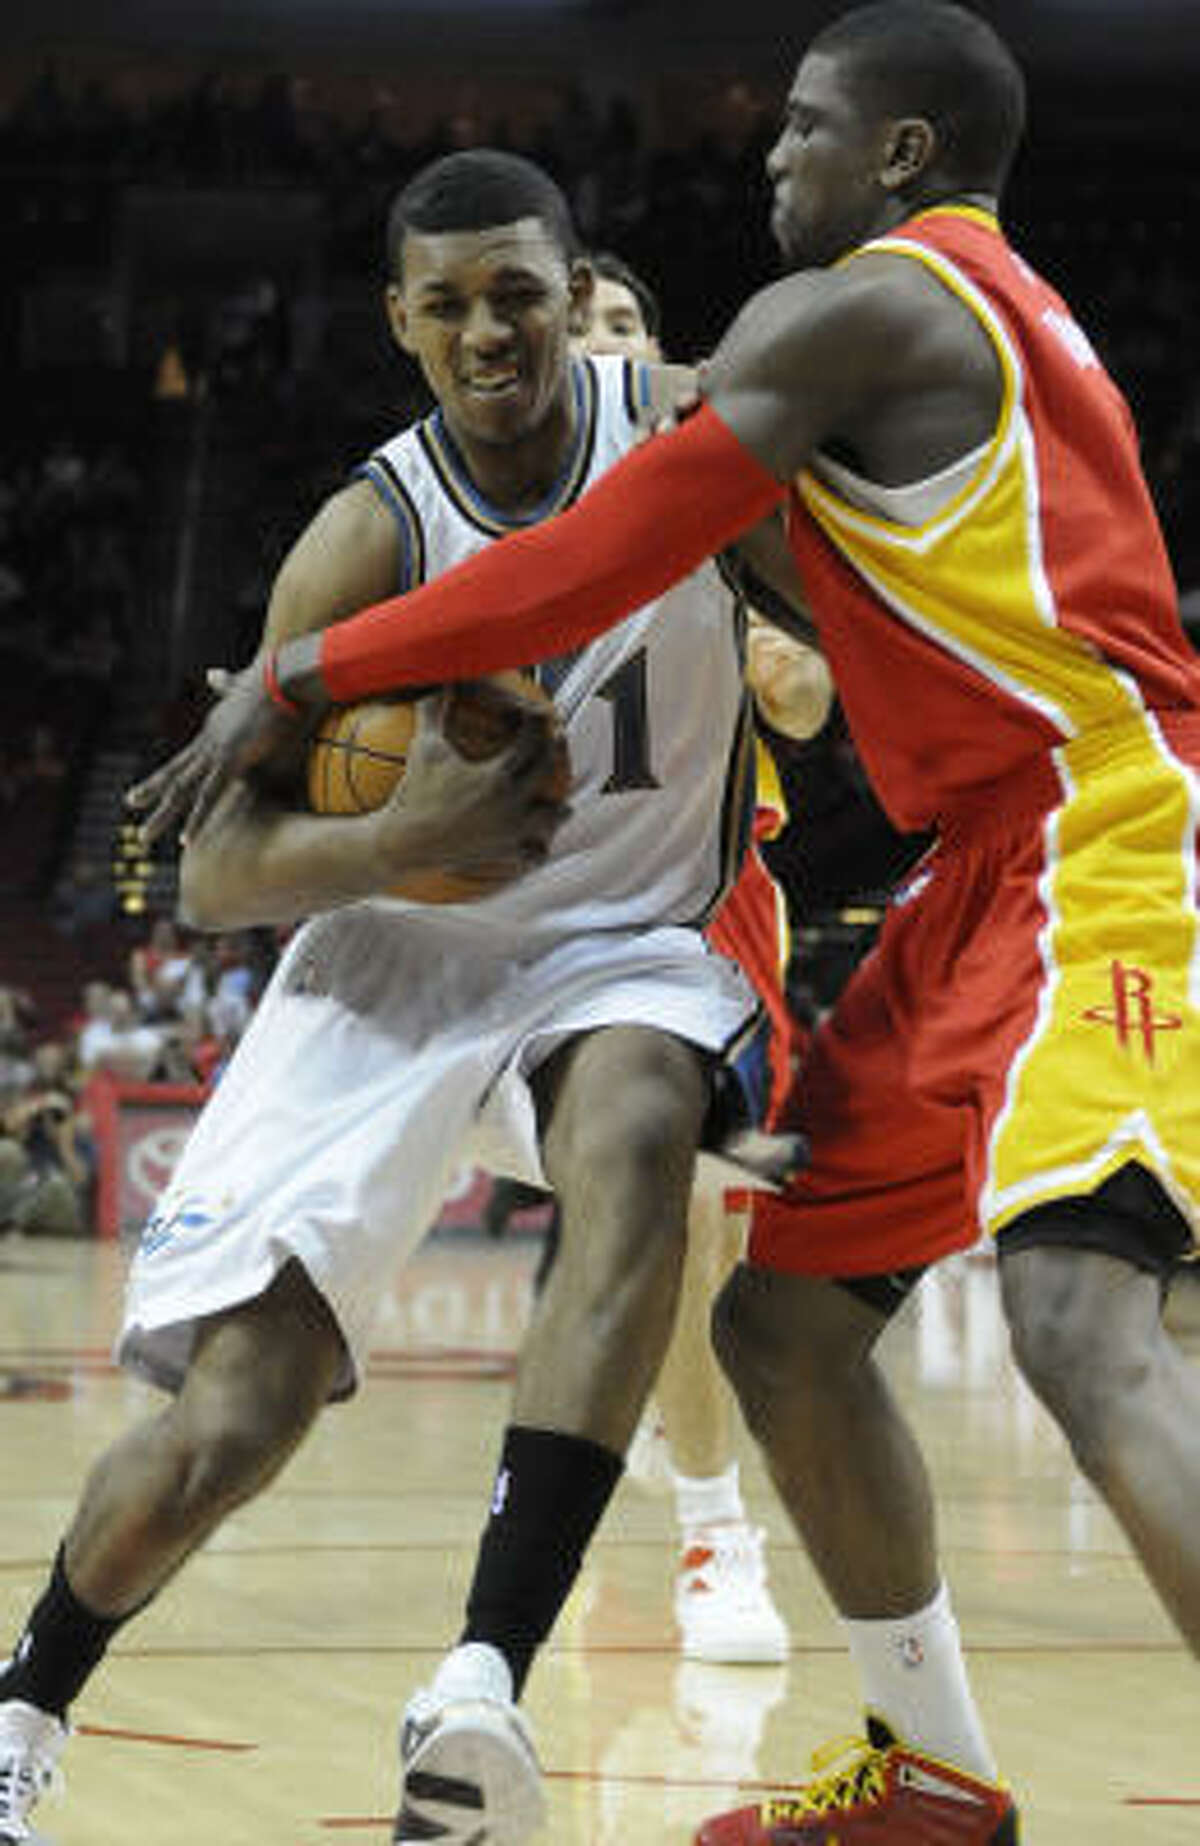 Wizards guard Nick Young goes for the basket while defended by Rockets guard Jermaine Taylor.